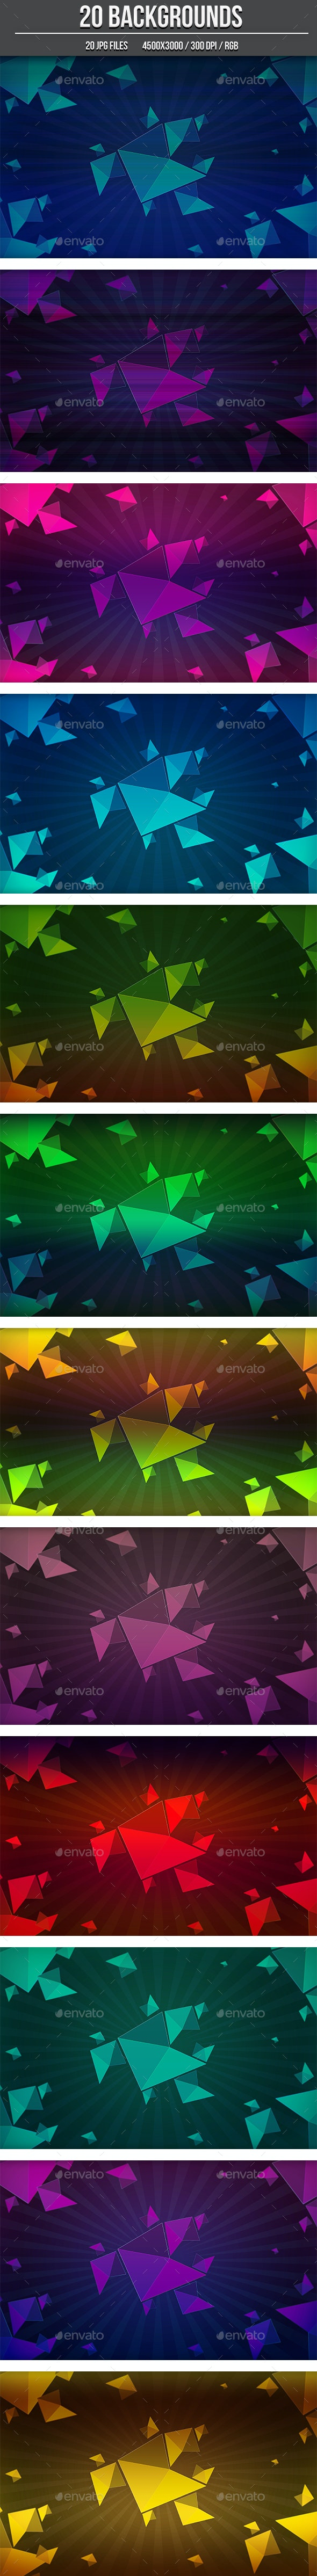 20 Abstract Background Shapes - Abstract Backgrounds